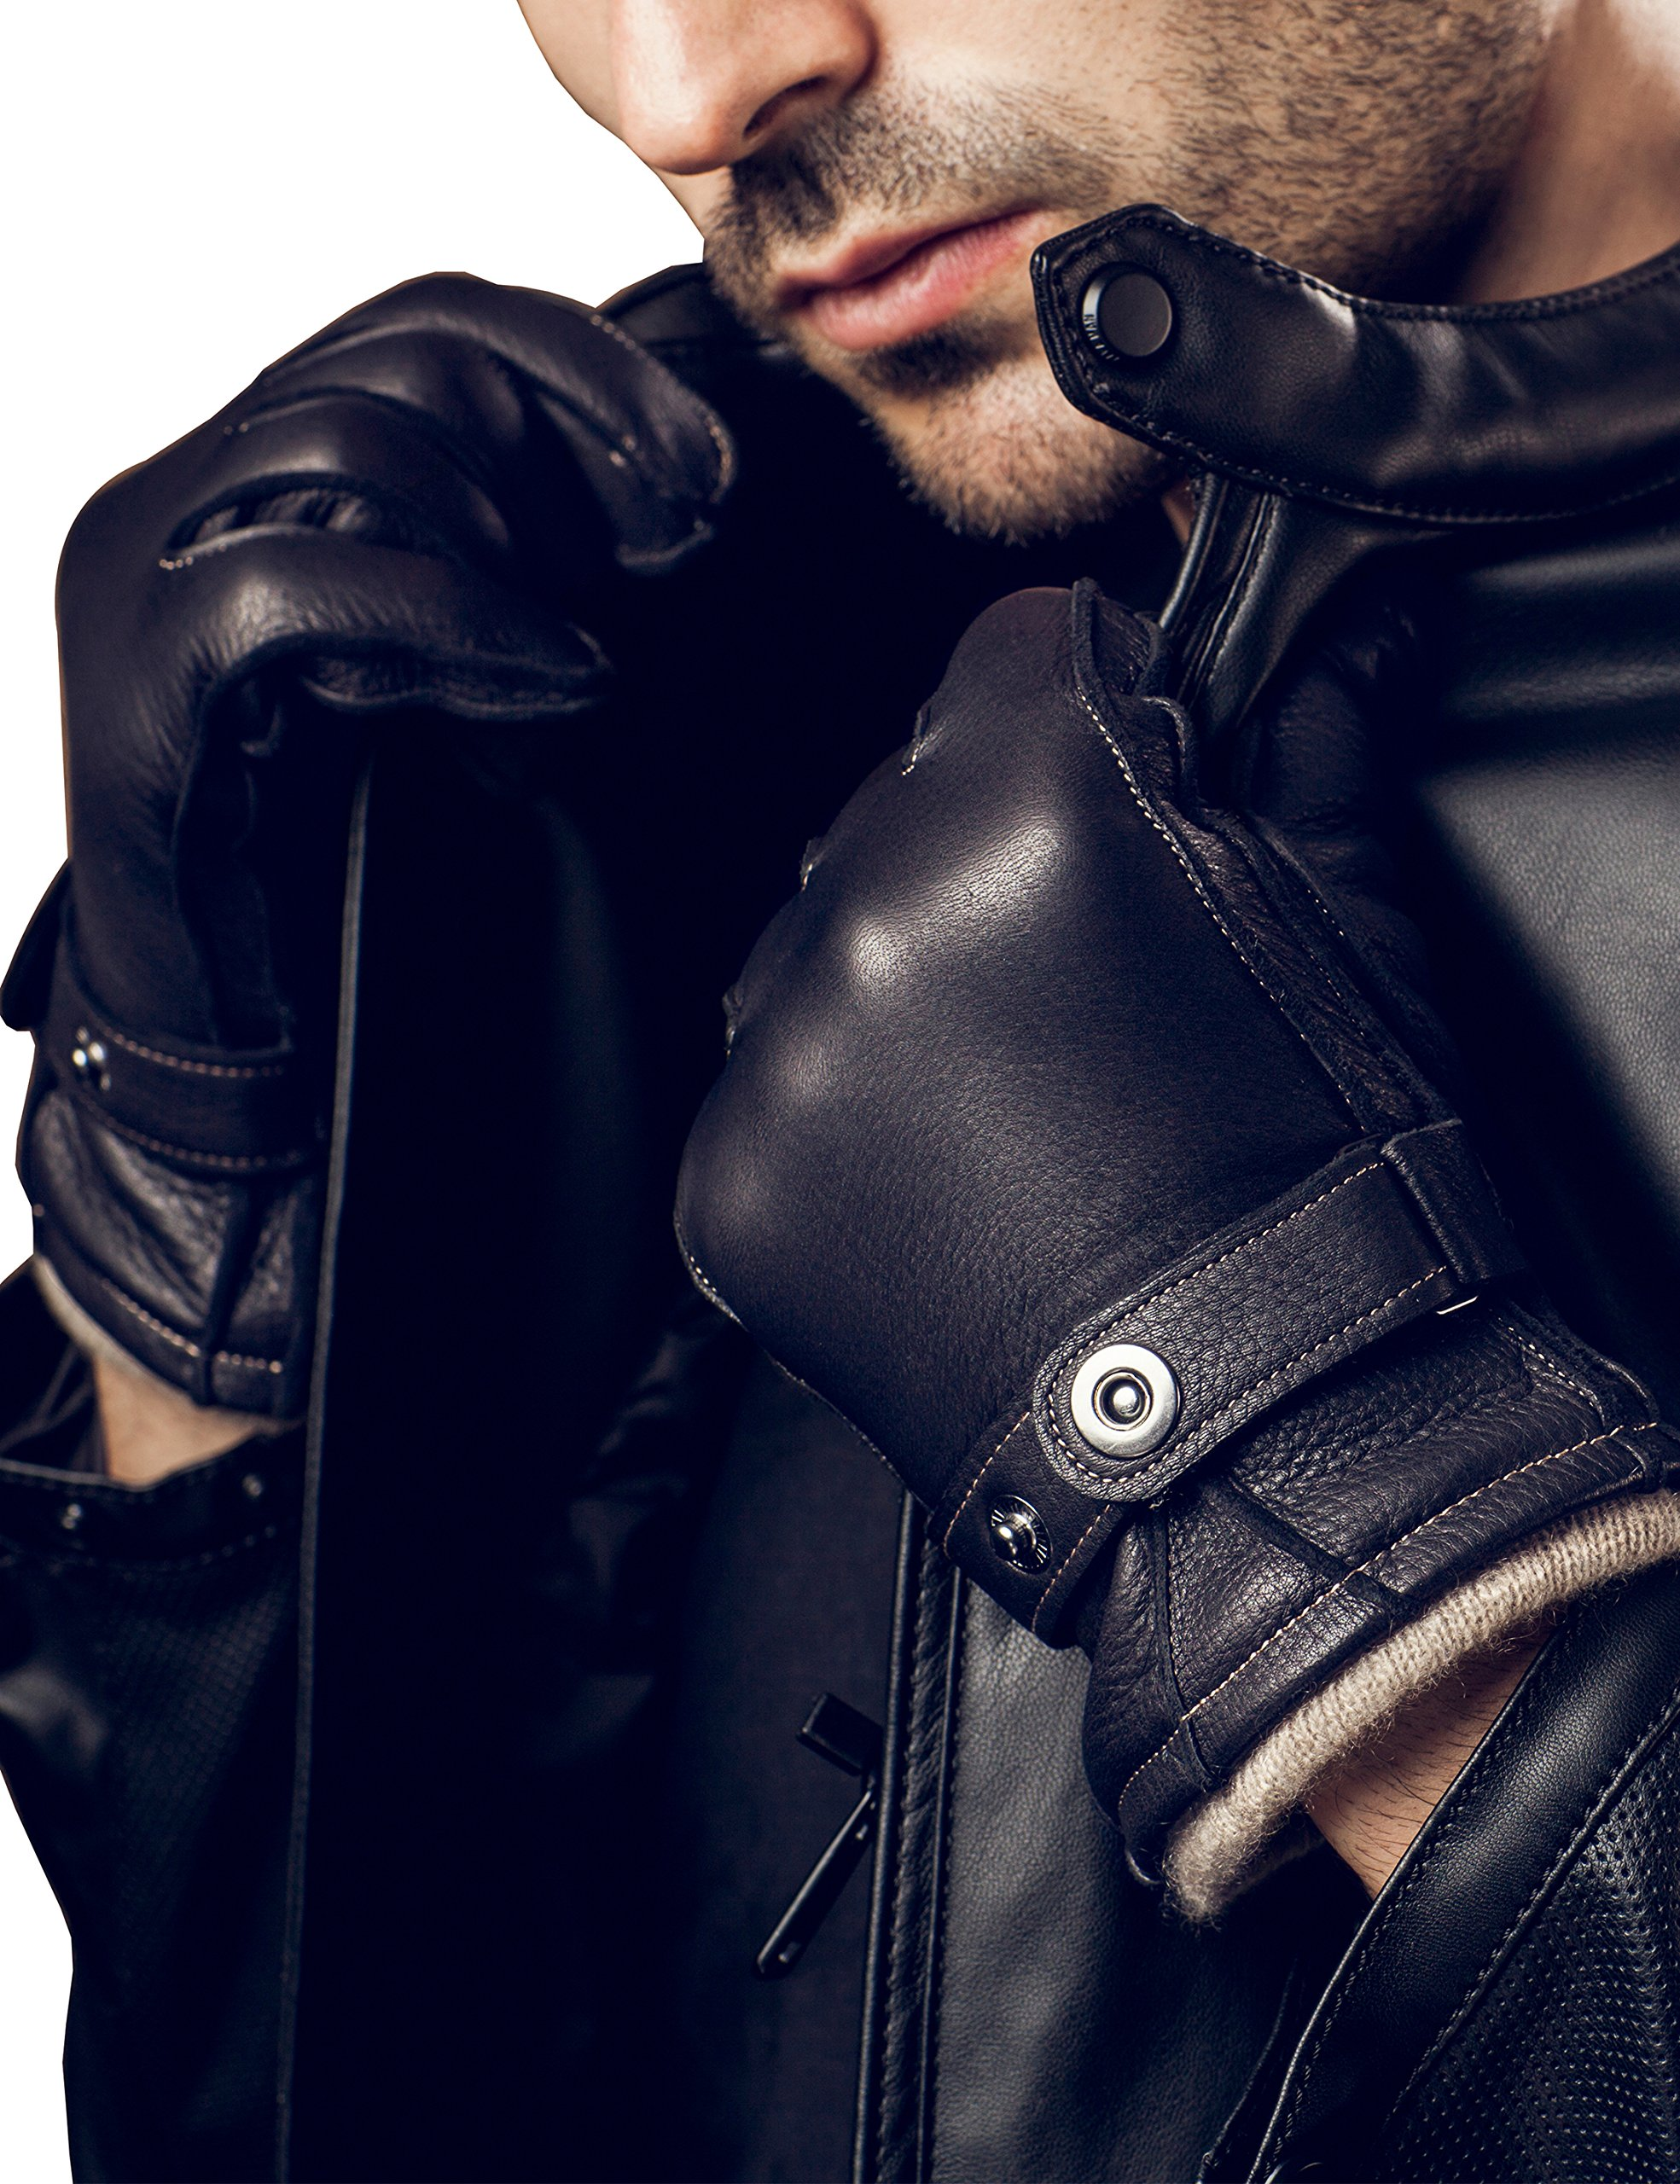 YISEVEN Men's Cashmere Lined Deerskin Leather Gloves Handsewn Belt Long Cuffs Genuine Natural Luxury Hand Warm Fur Heated Lining for Winter Dress Driving Motorcycle Work Xmas Gifts, Black 8.5''/Small